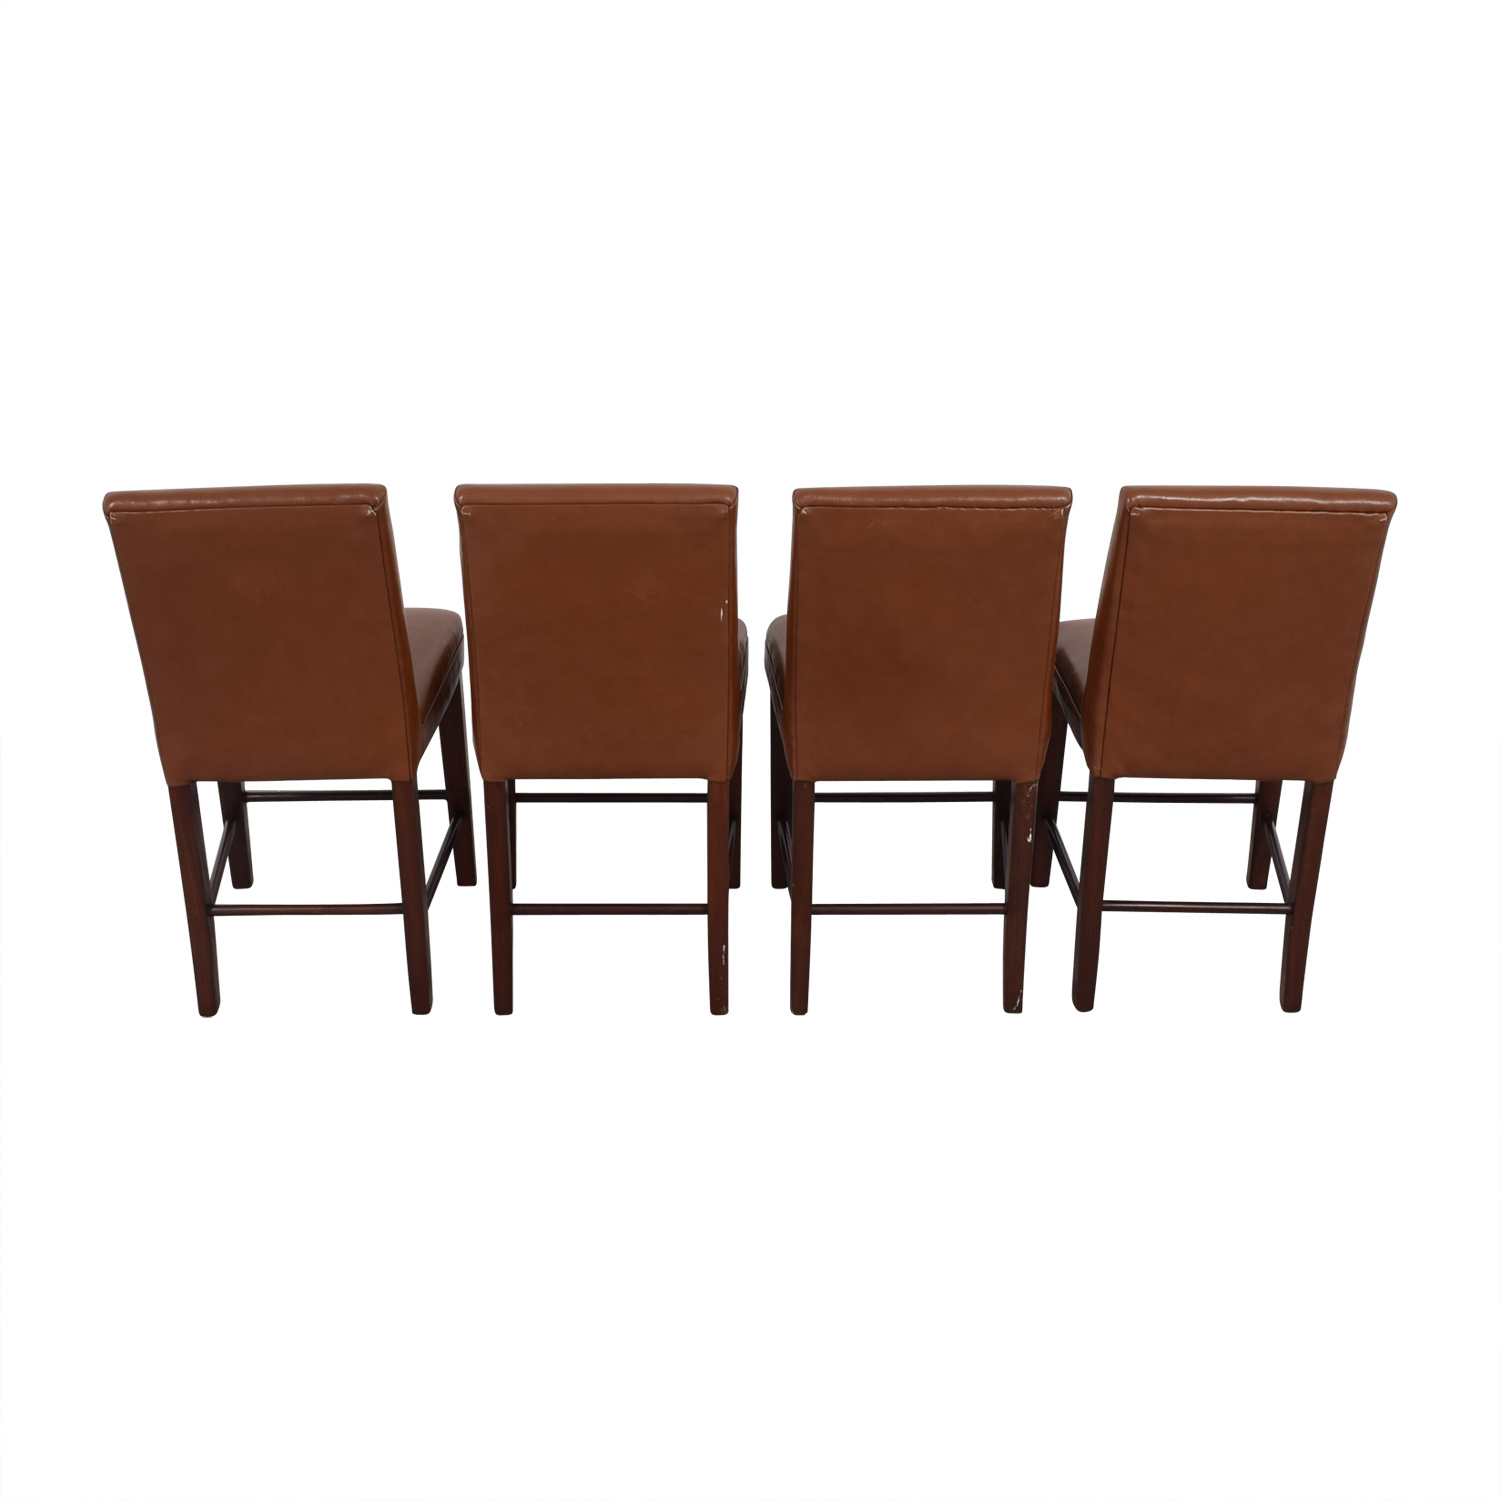 buy Cognac Leather Dining Chairs Dining Chairs